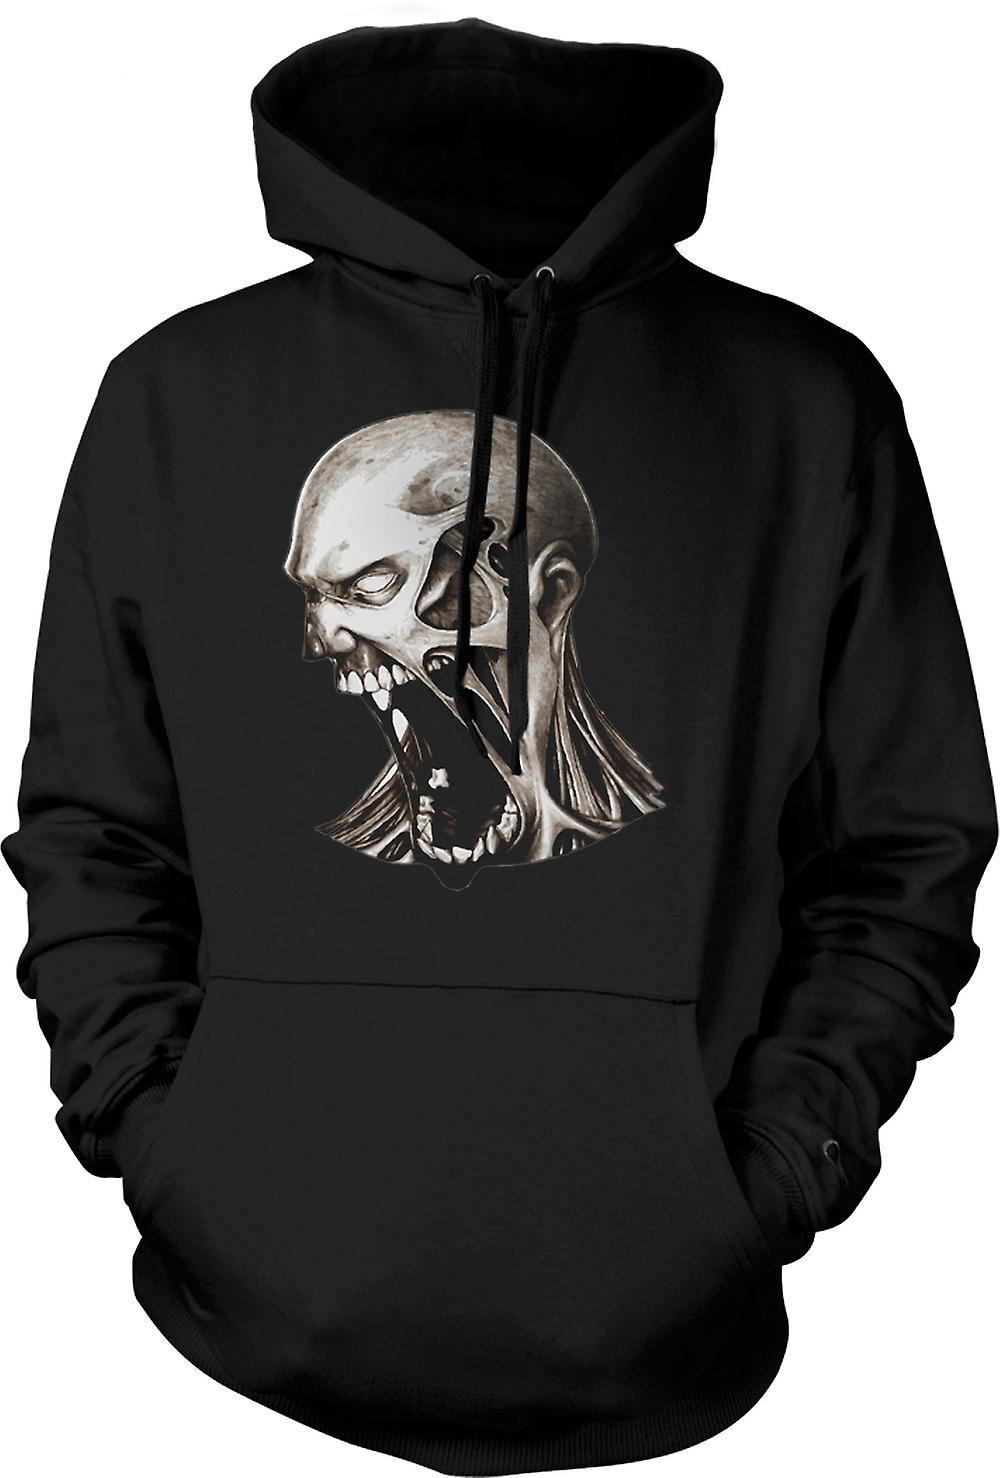 Mens Hoodie - Zombie Undead Mouth - Horror